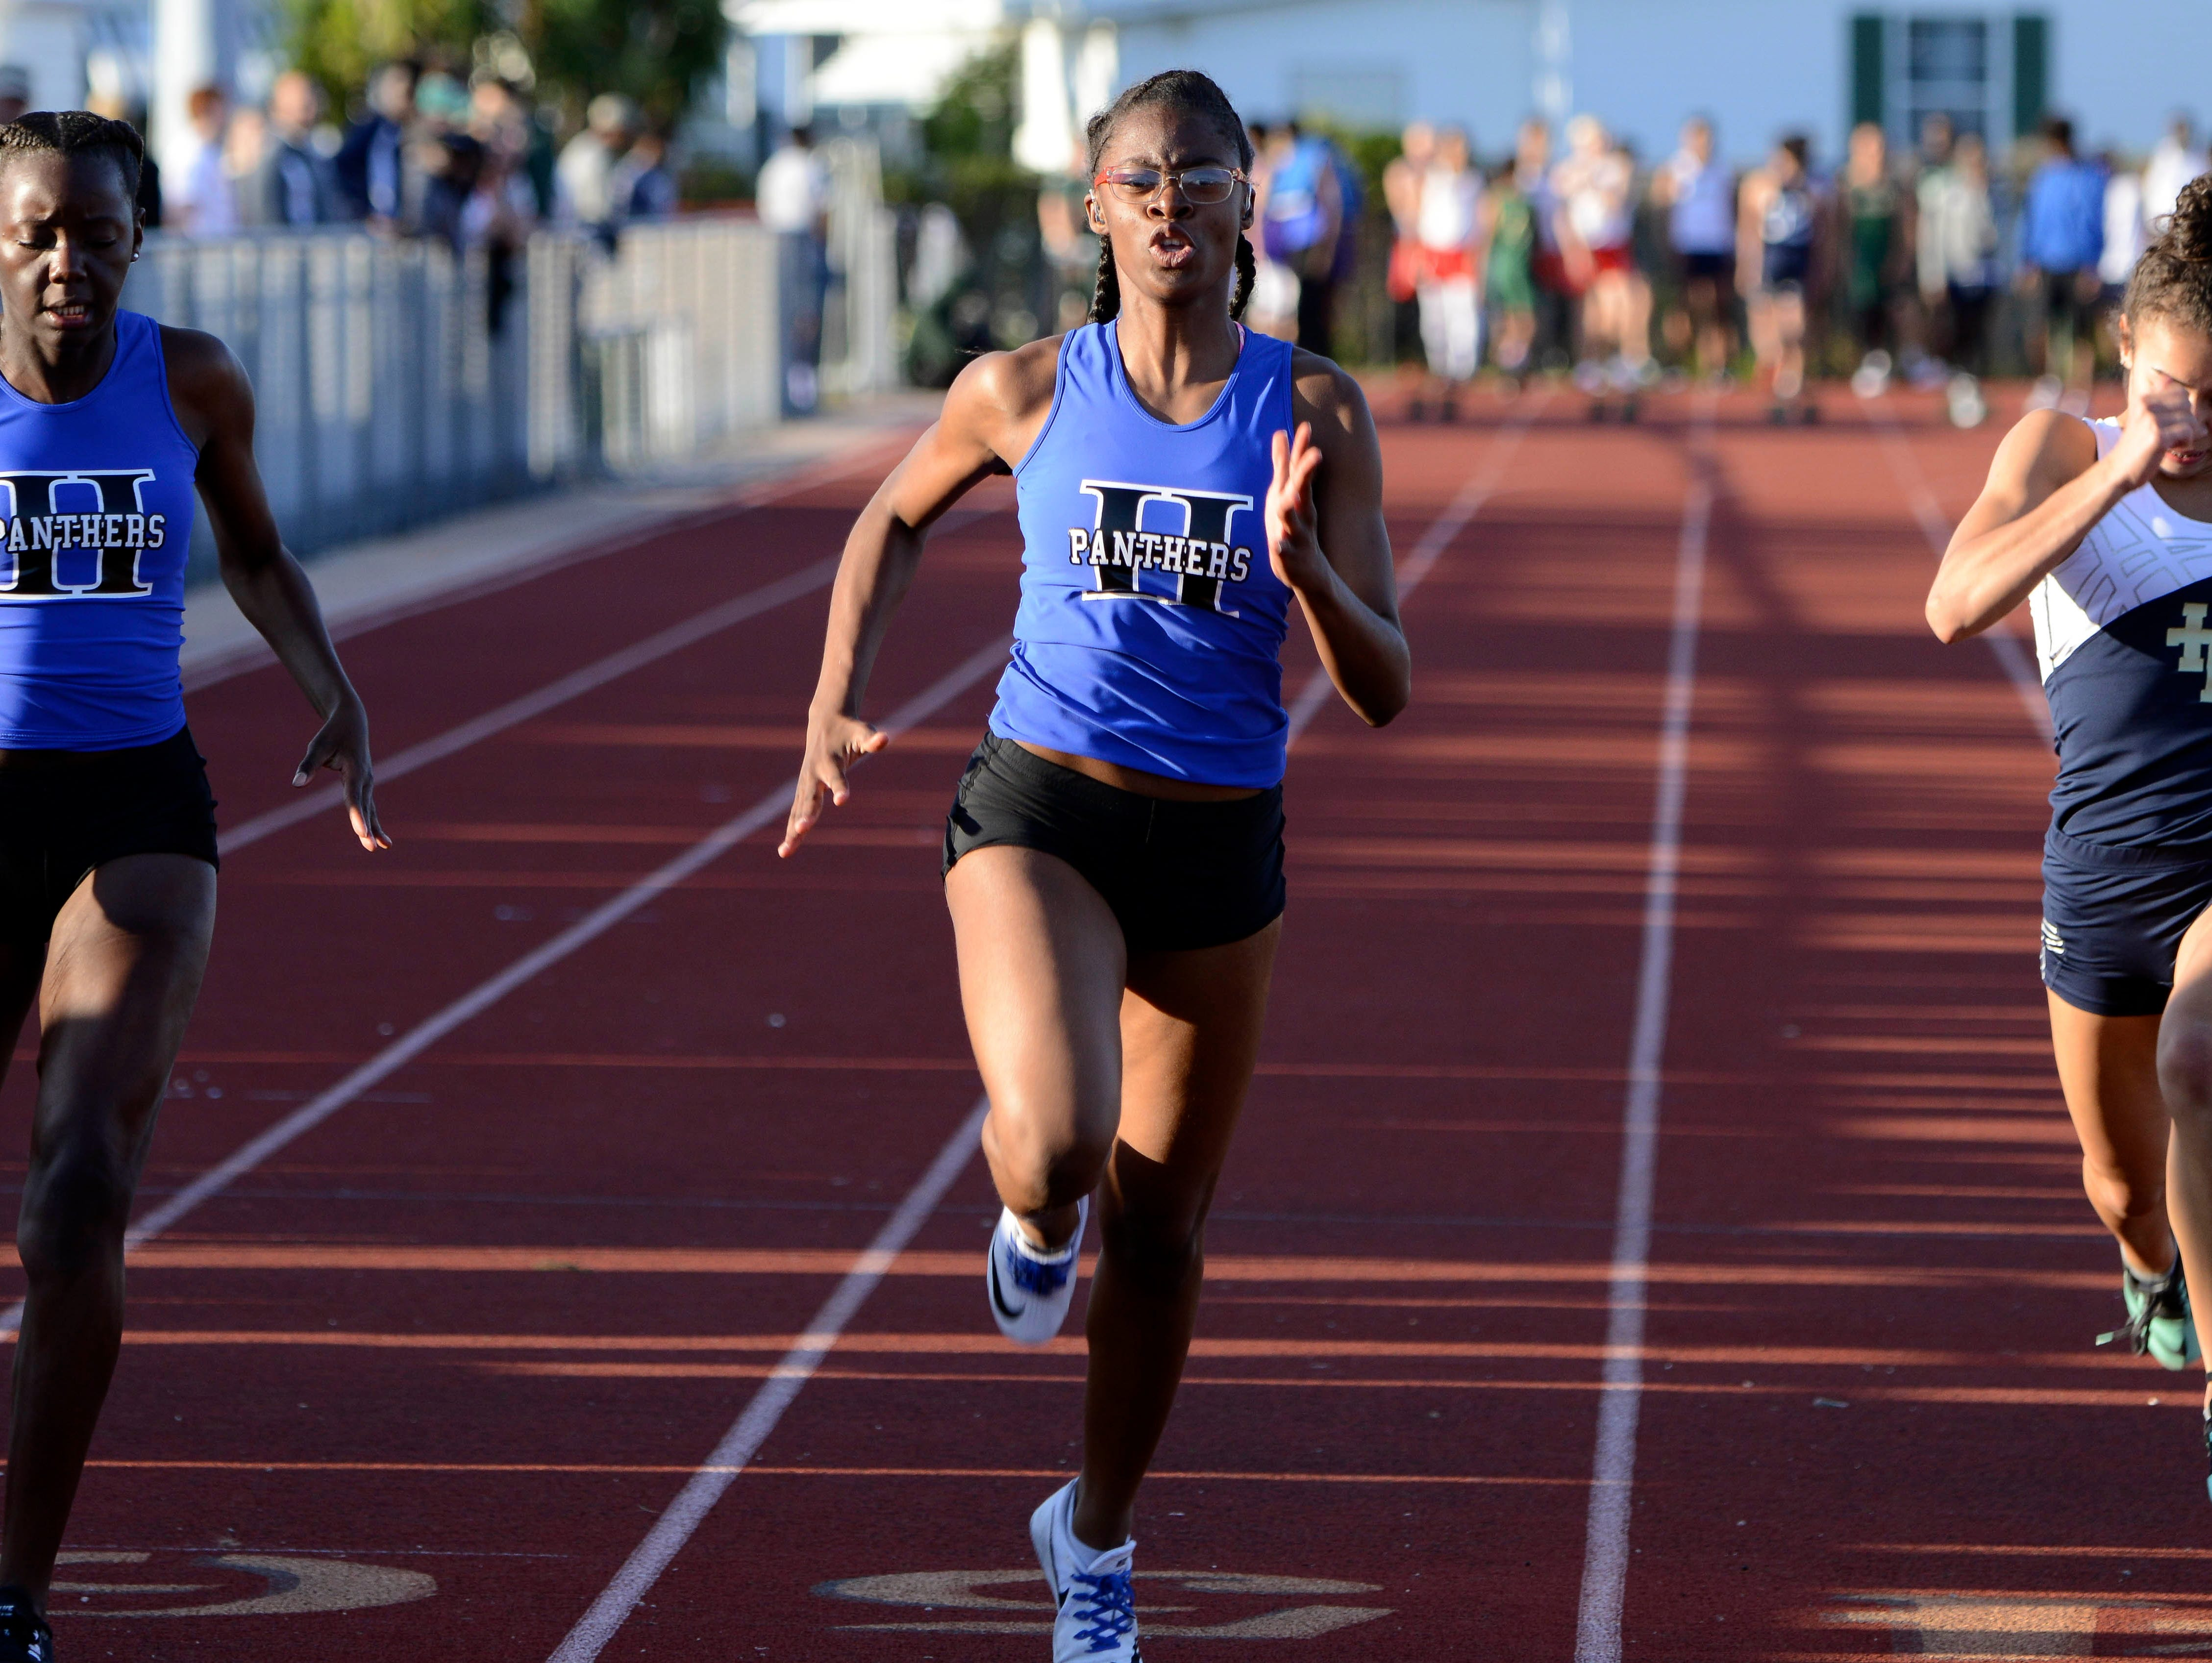 Jakia Alphonse of Heritage, Macoyah Barry of Heritage and Adriana Melendez of Holy Trinity run the 100 during Friday's track meet in Melbourne.